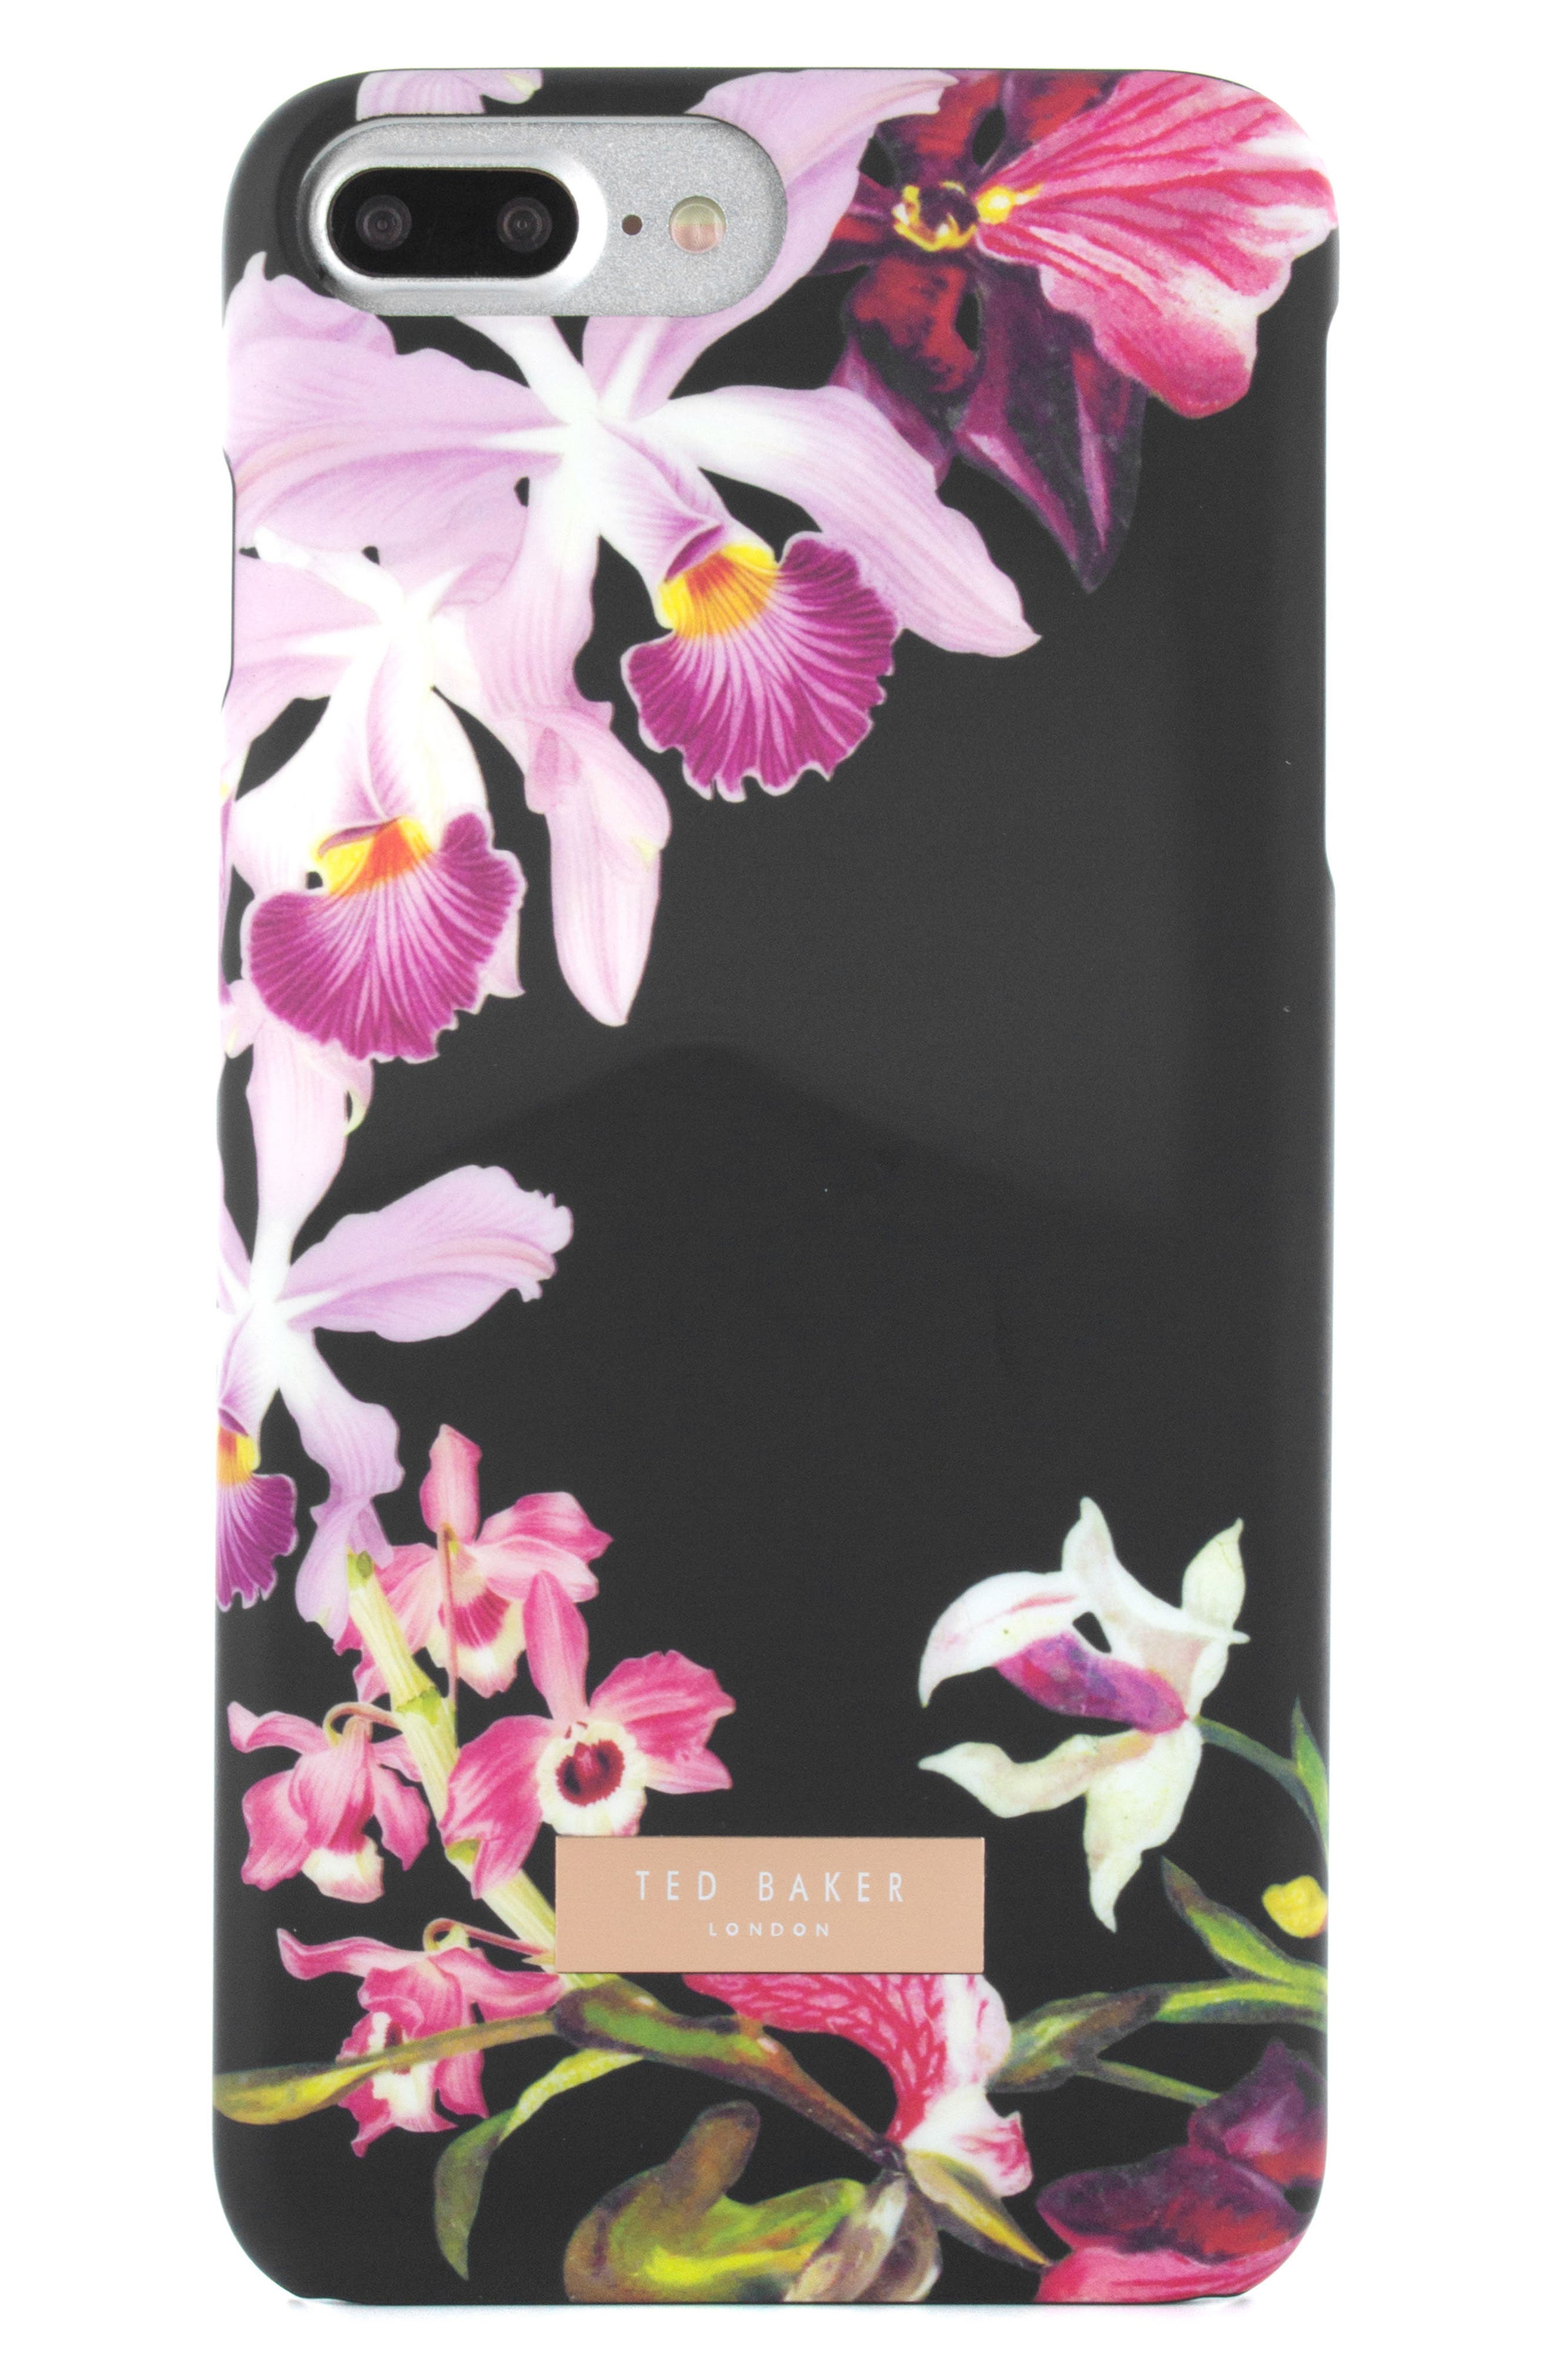 Main Image - Ted Baker London Sidra Garden iPhone 6/6s/7/8 Plus Case